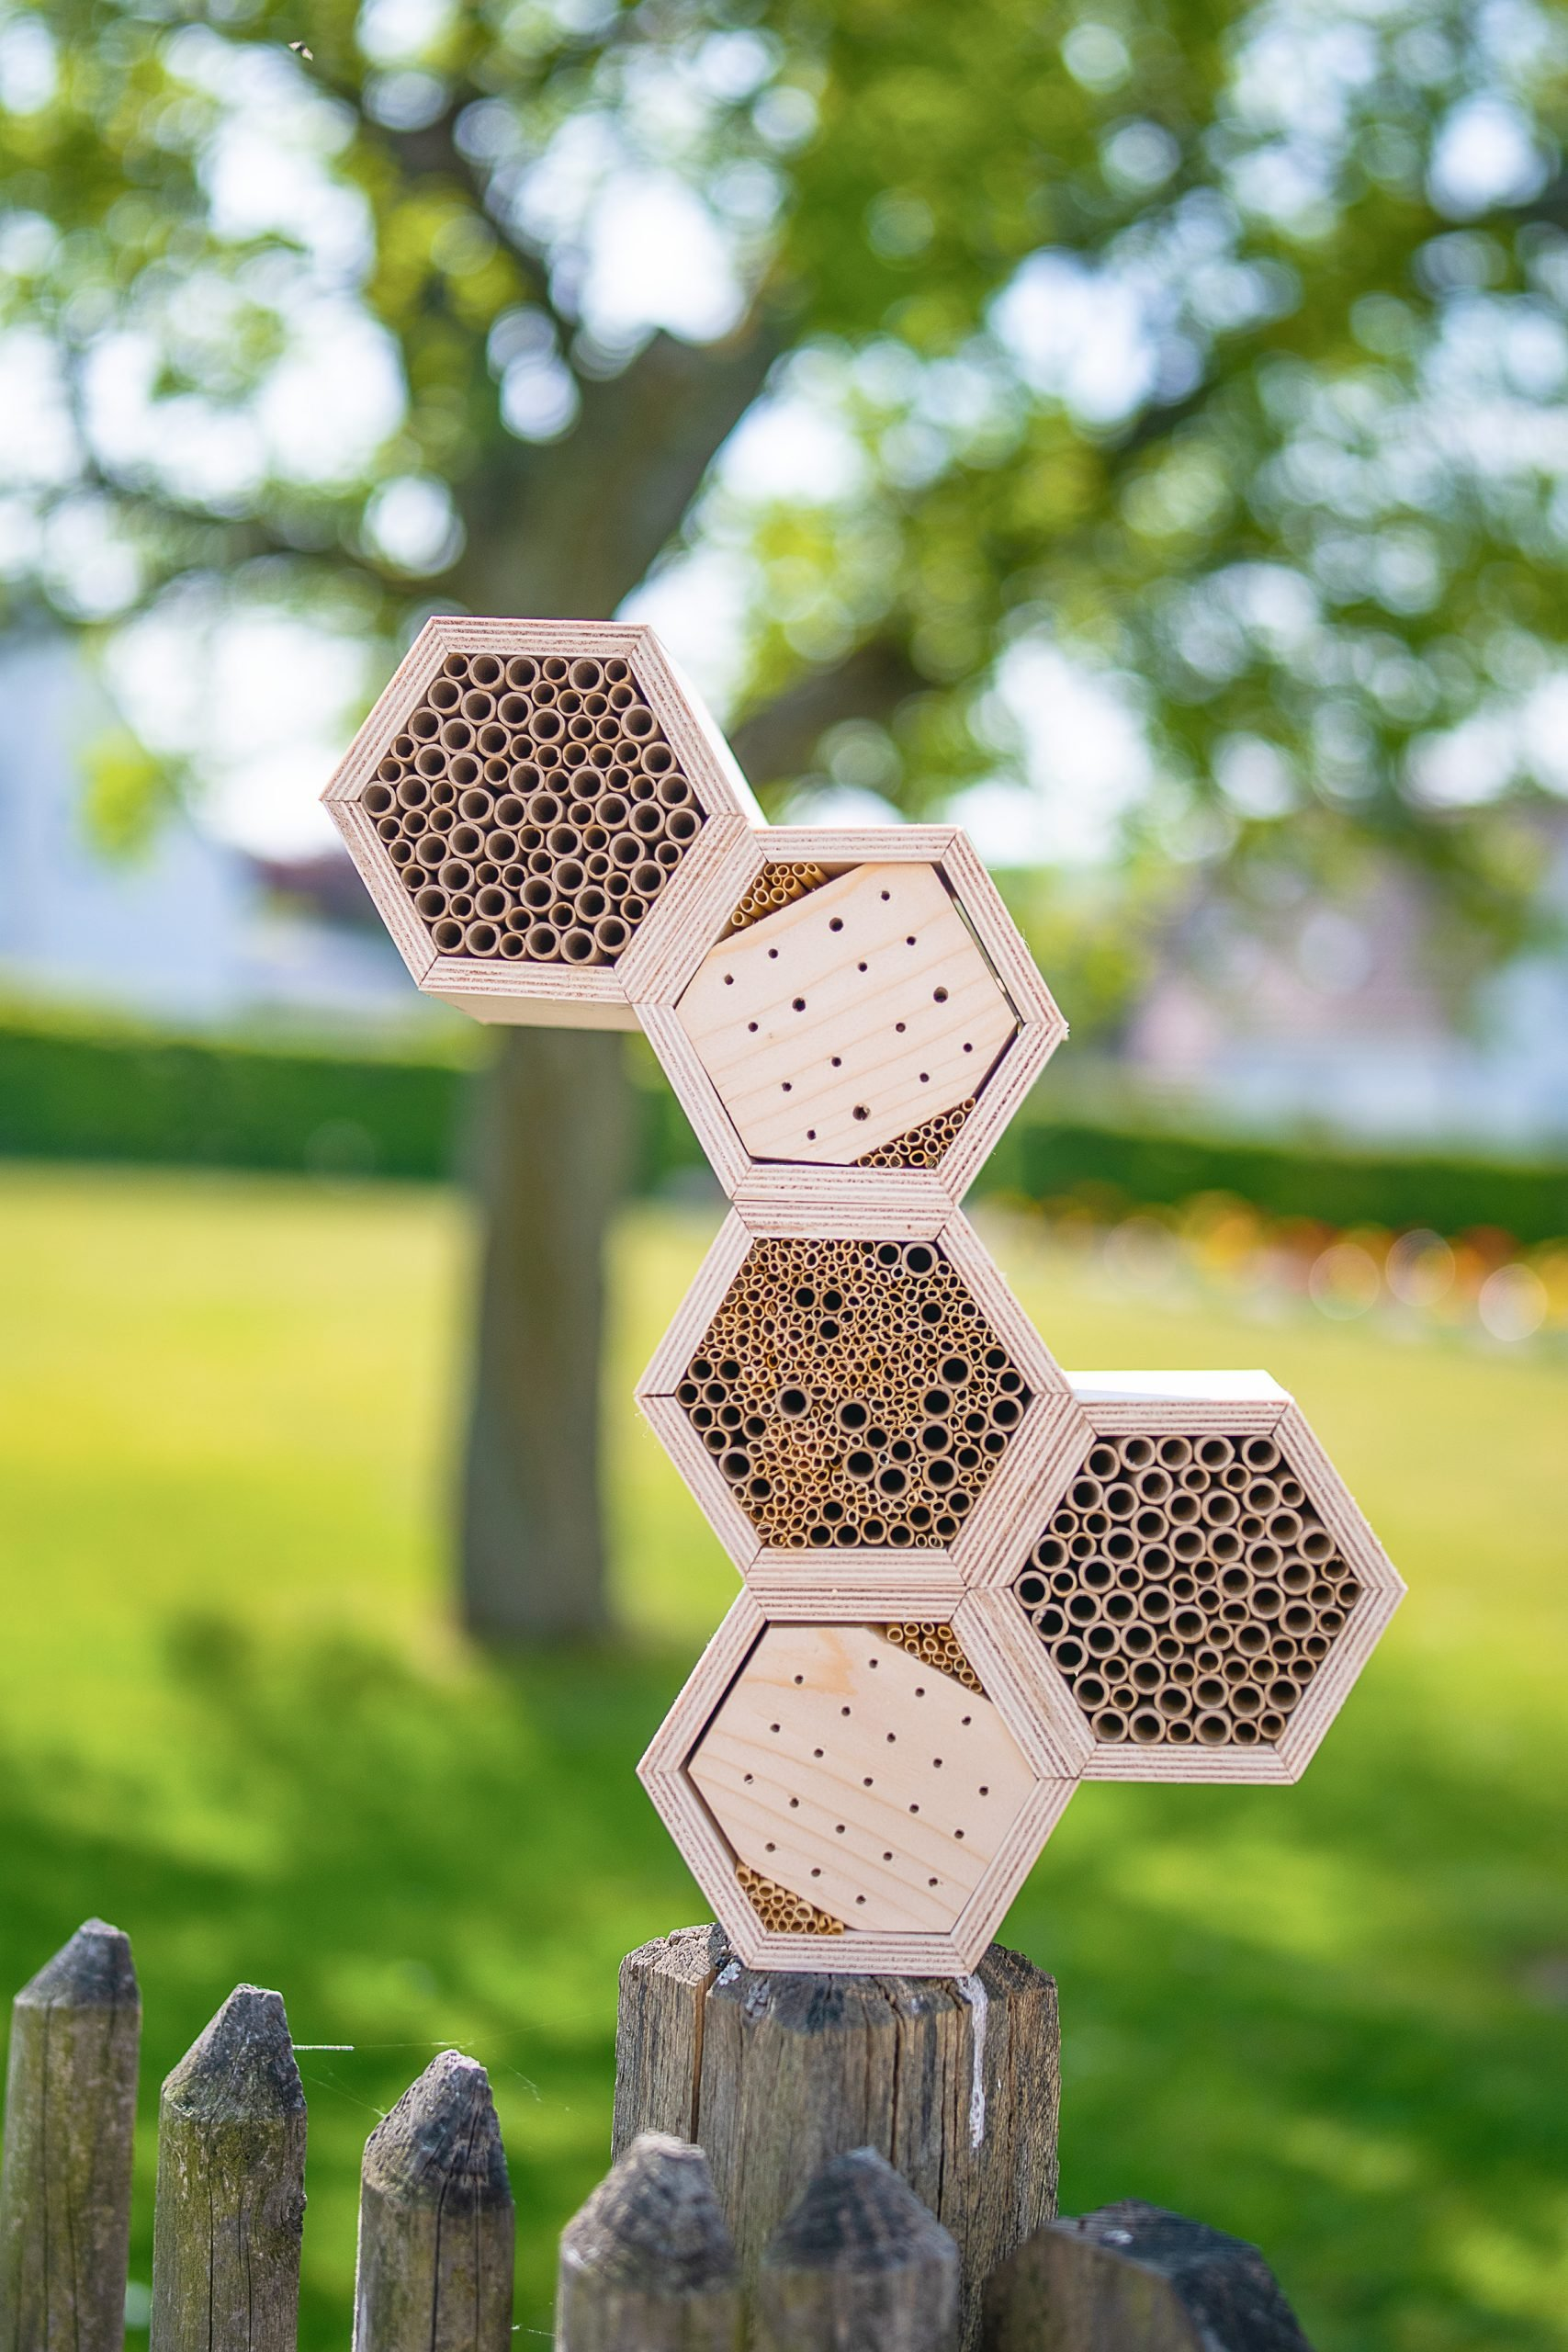 How To Build An Insect Hotel